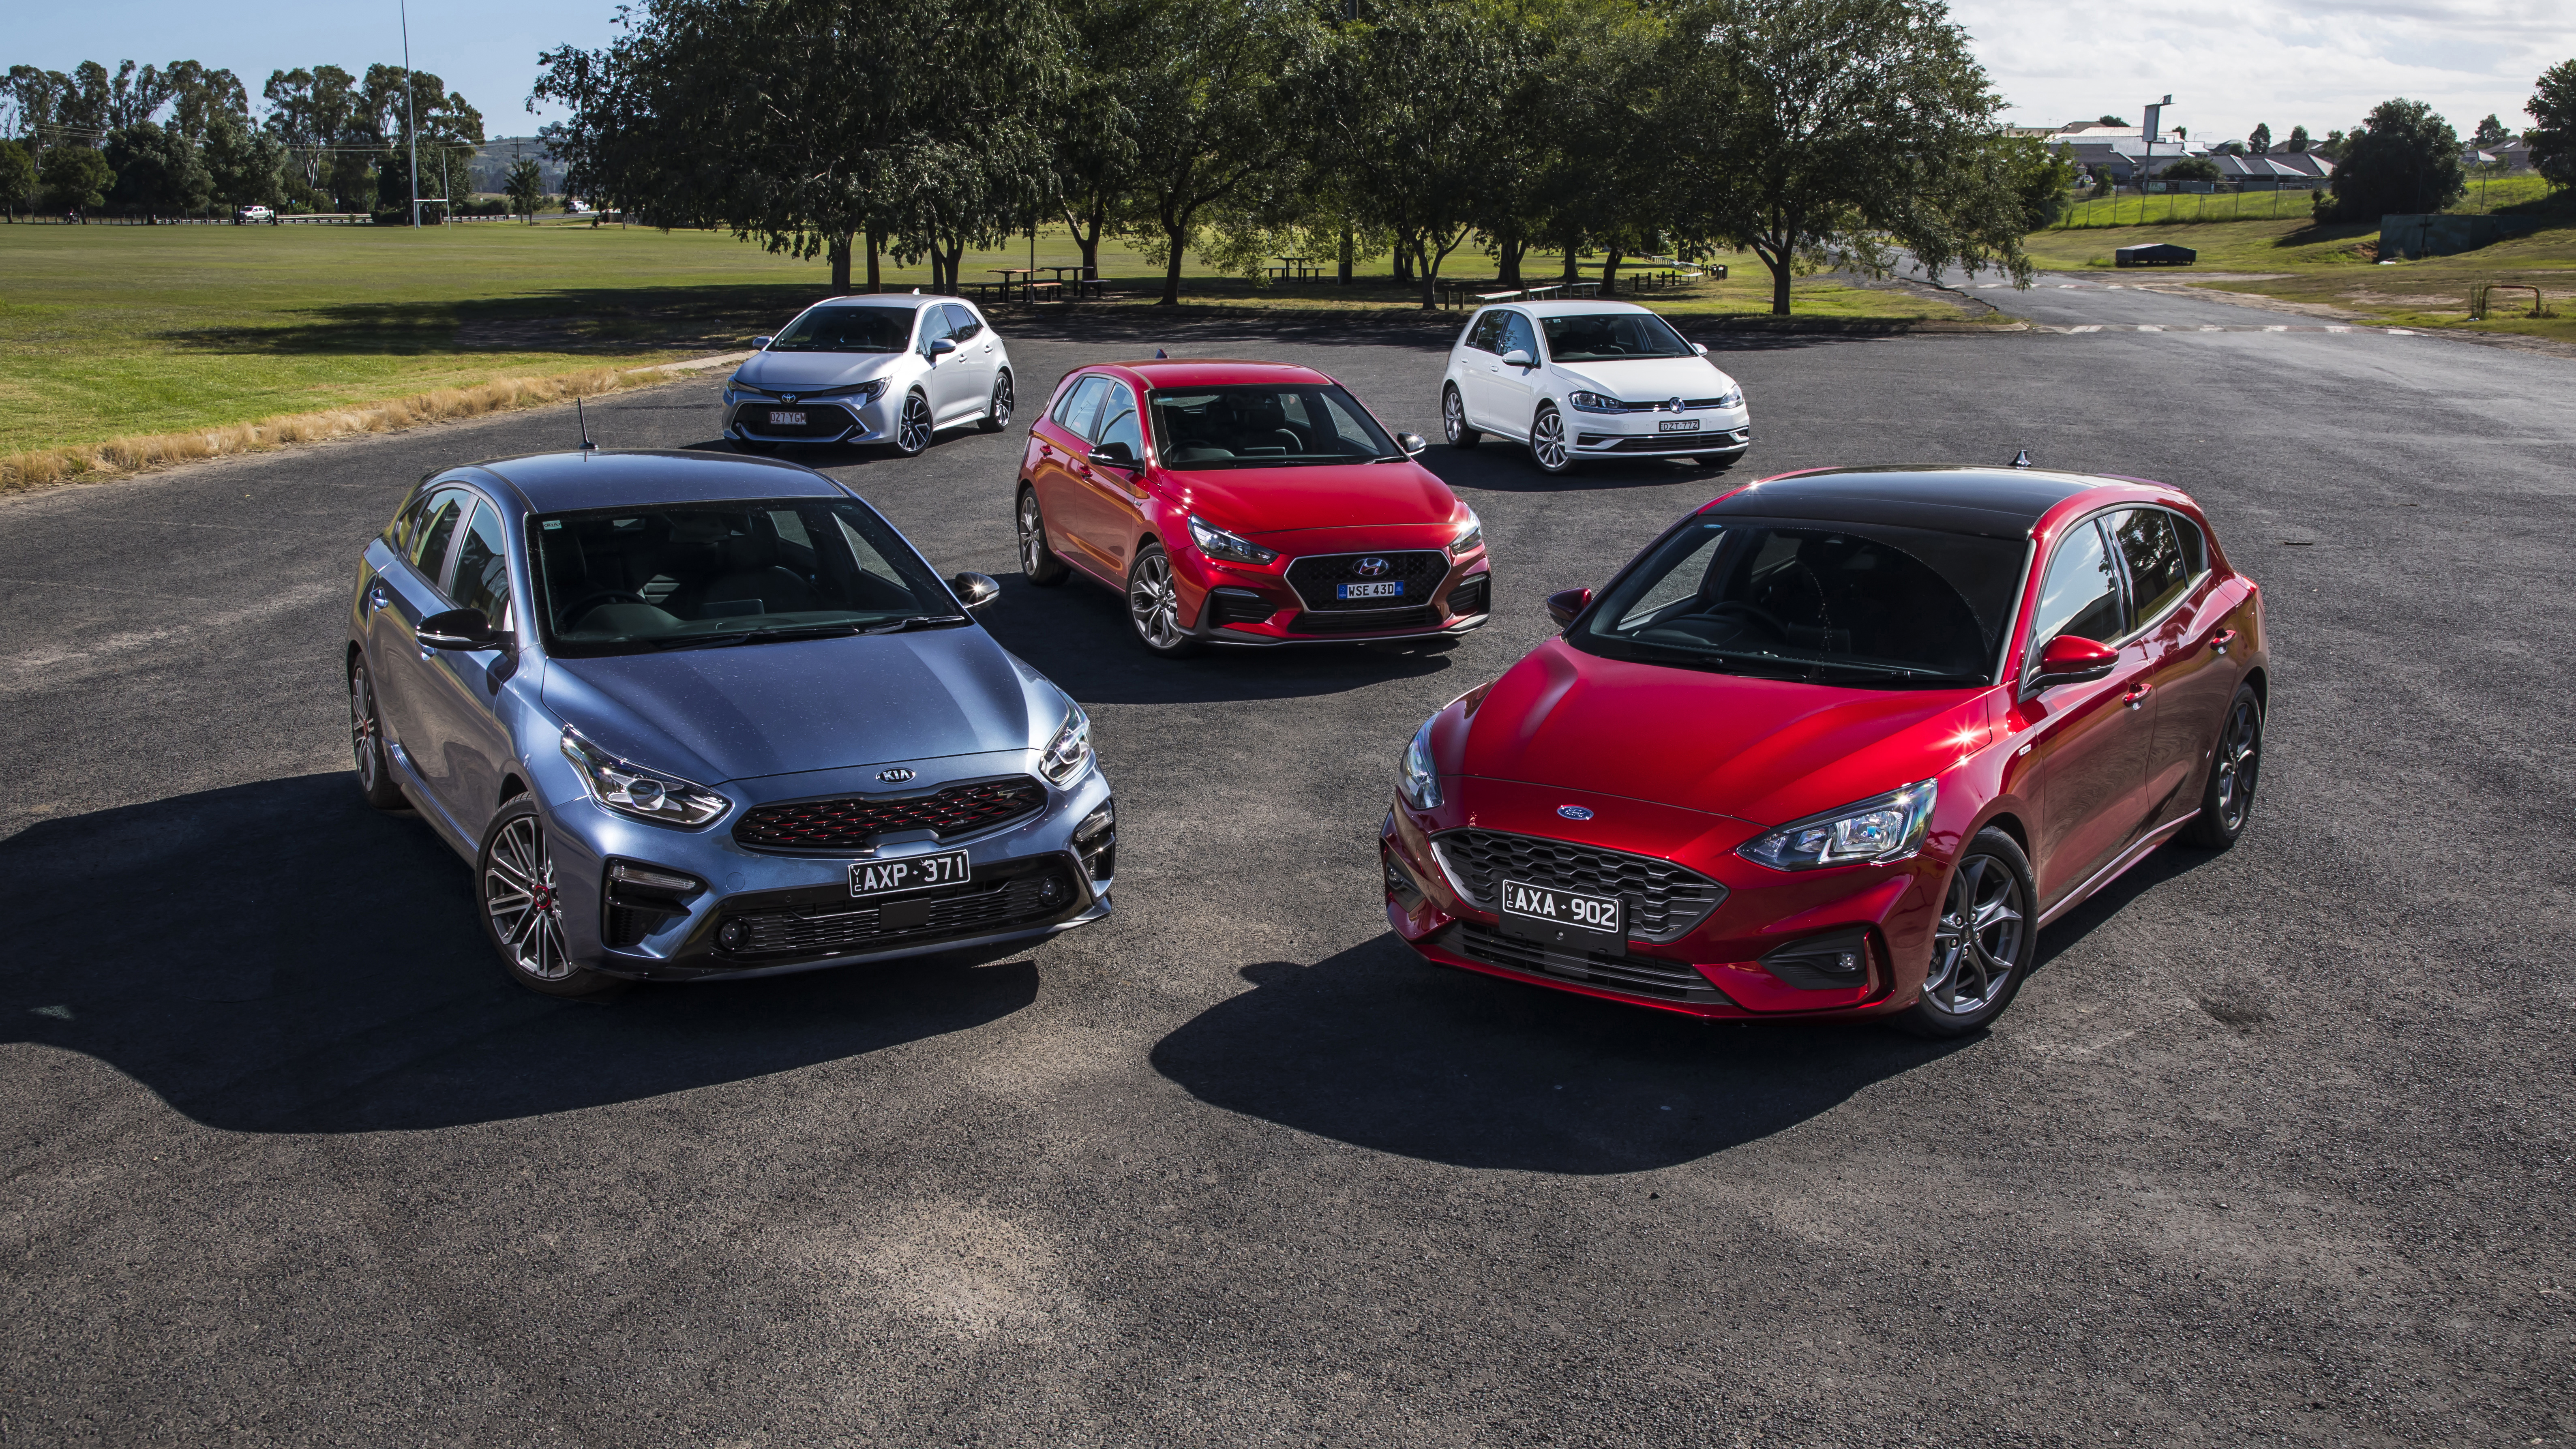 Small hatch comparison review: Ford Focus v Hyundai i30 v